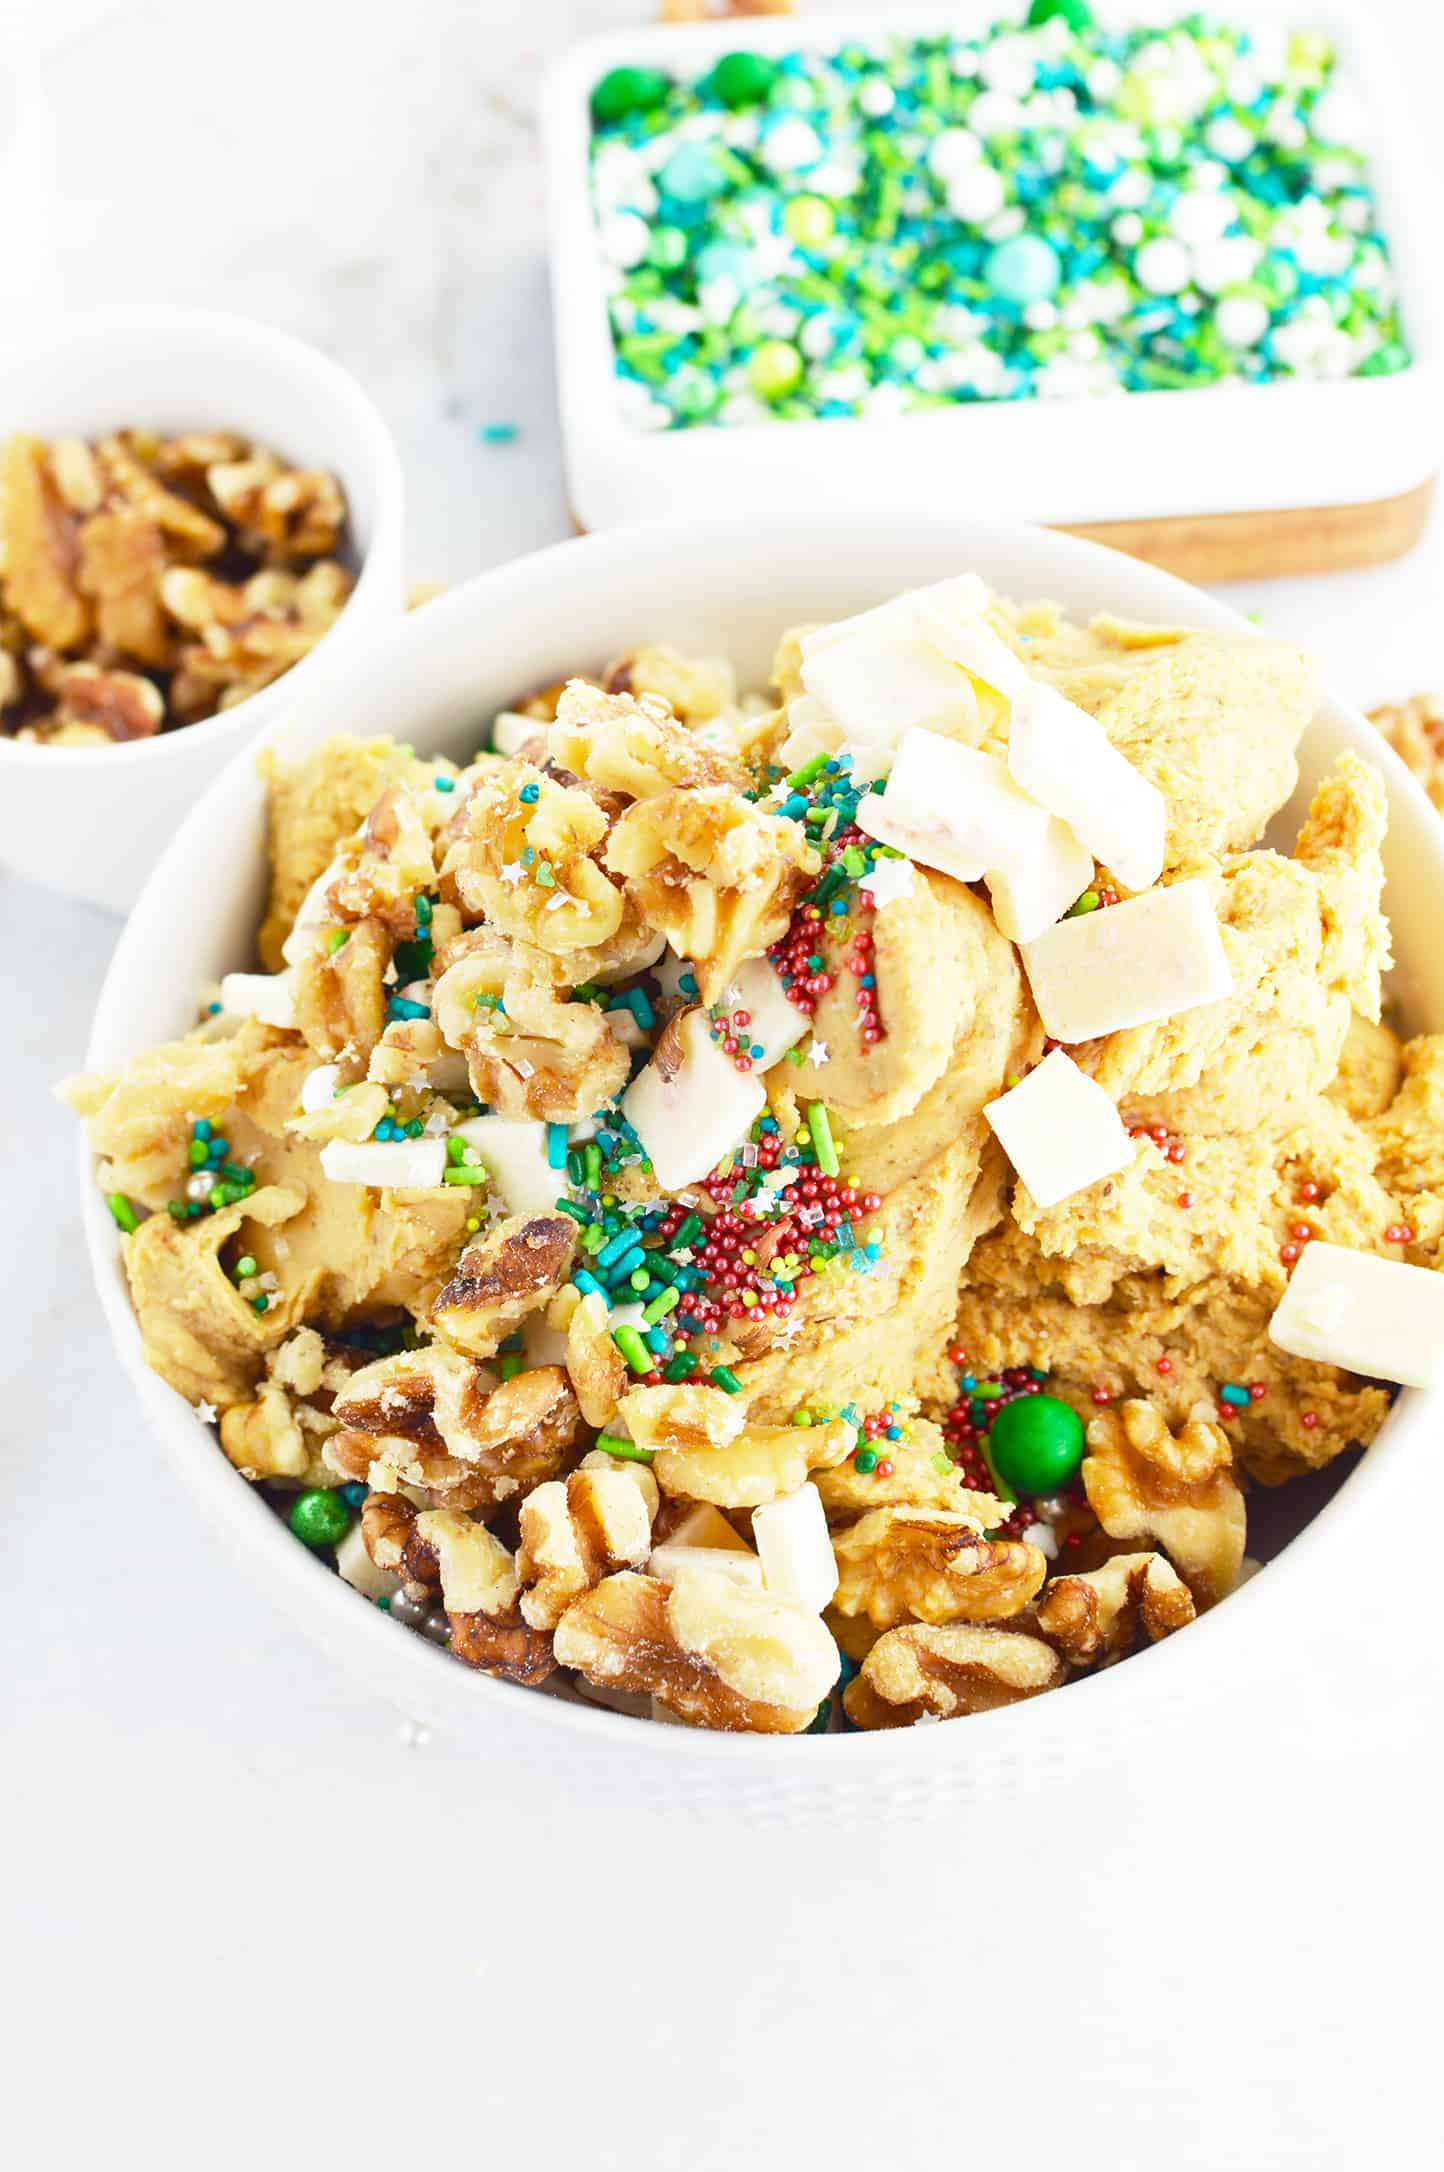 Healthy Edible Cookie Dough with holiday sprinkles and walnuts in the background.